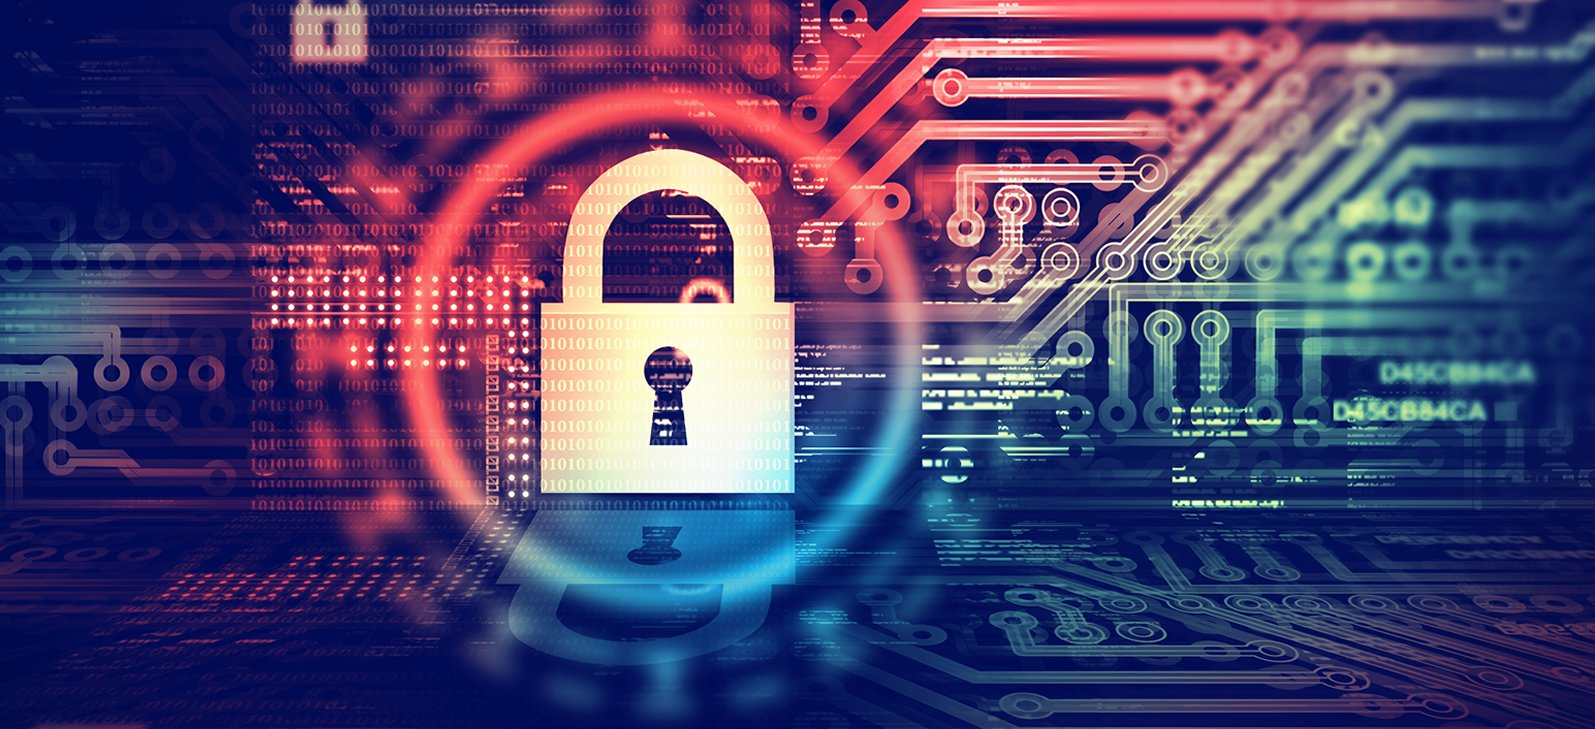 Blog: High-Profile Breaches Highlight Cybersecurity Issues Facing Financial Institutions